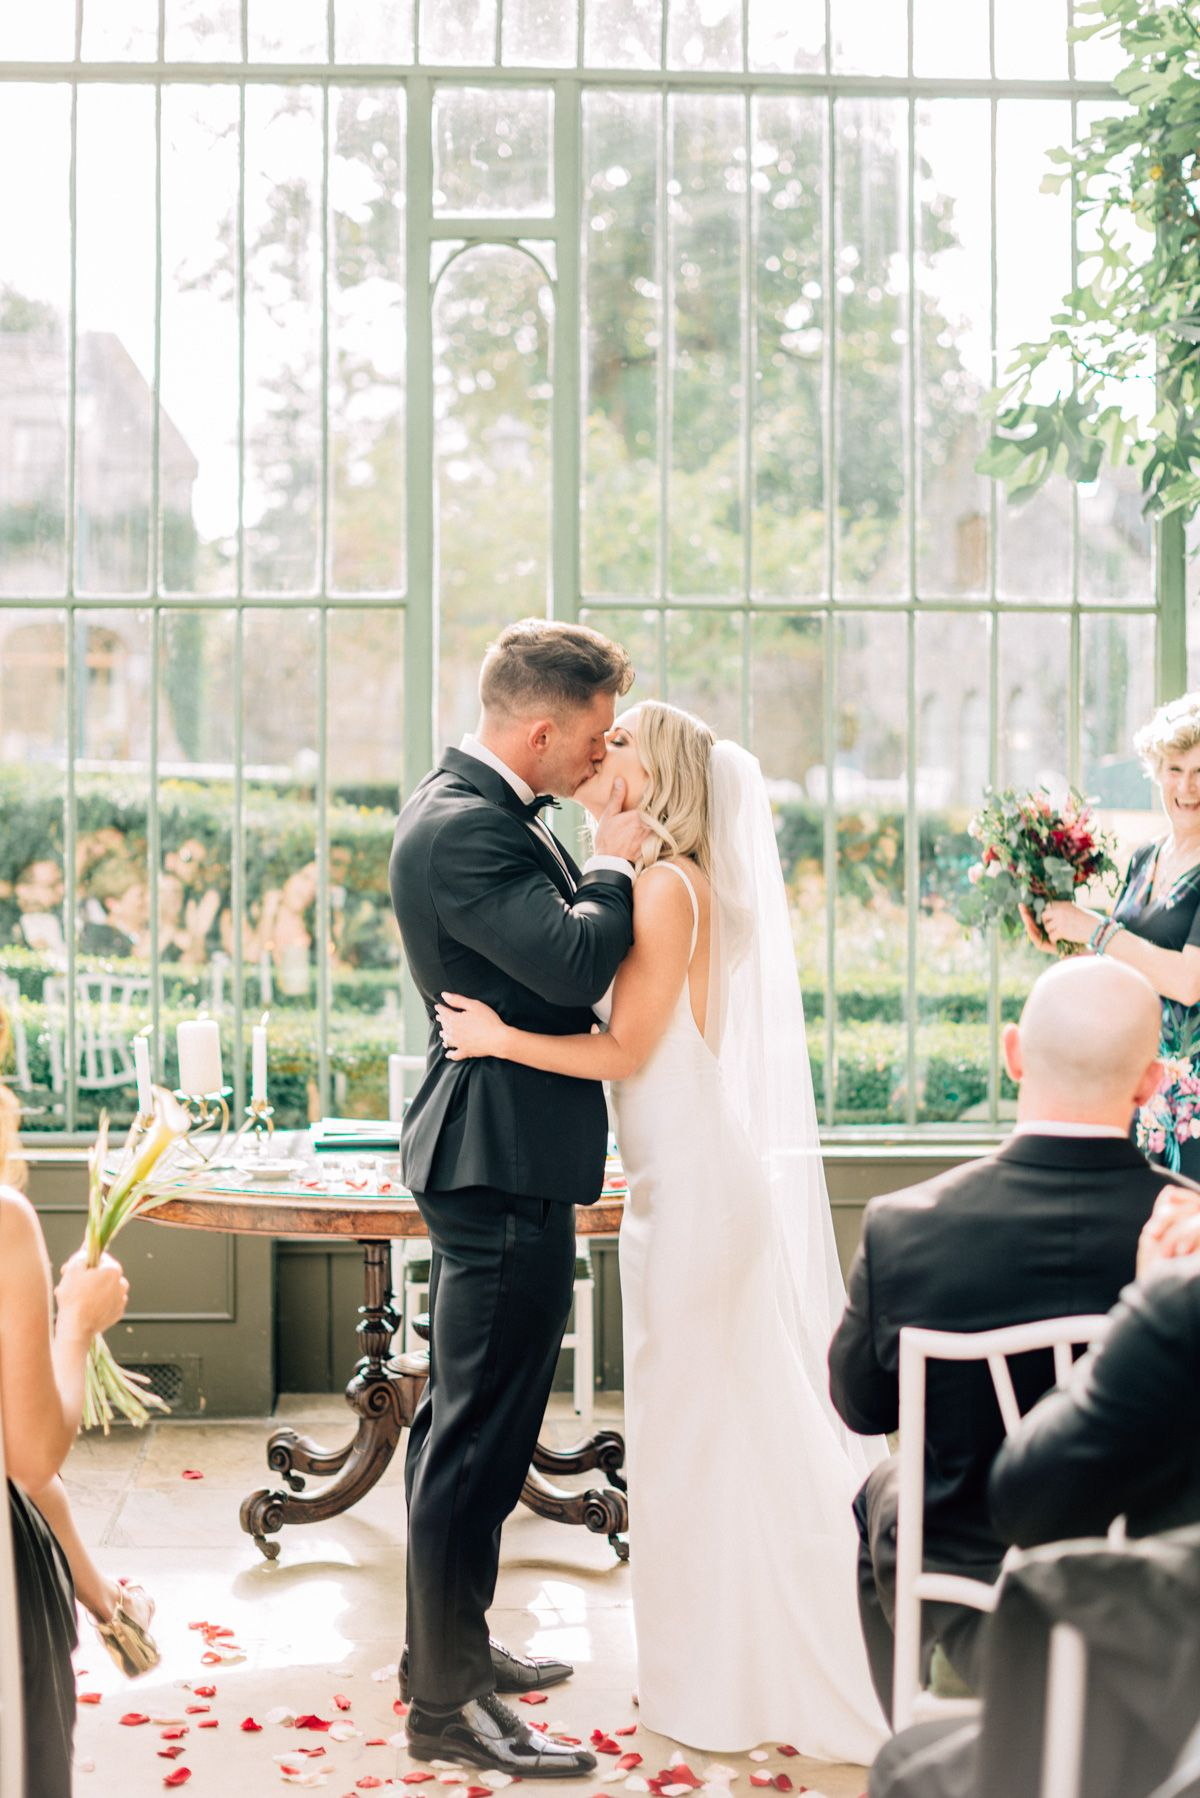 We Can T Help But Love This Romantic Wedding In Ireland In 2020 Wedding Romantic Wedding Wedding Day